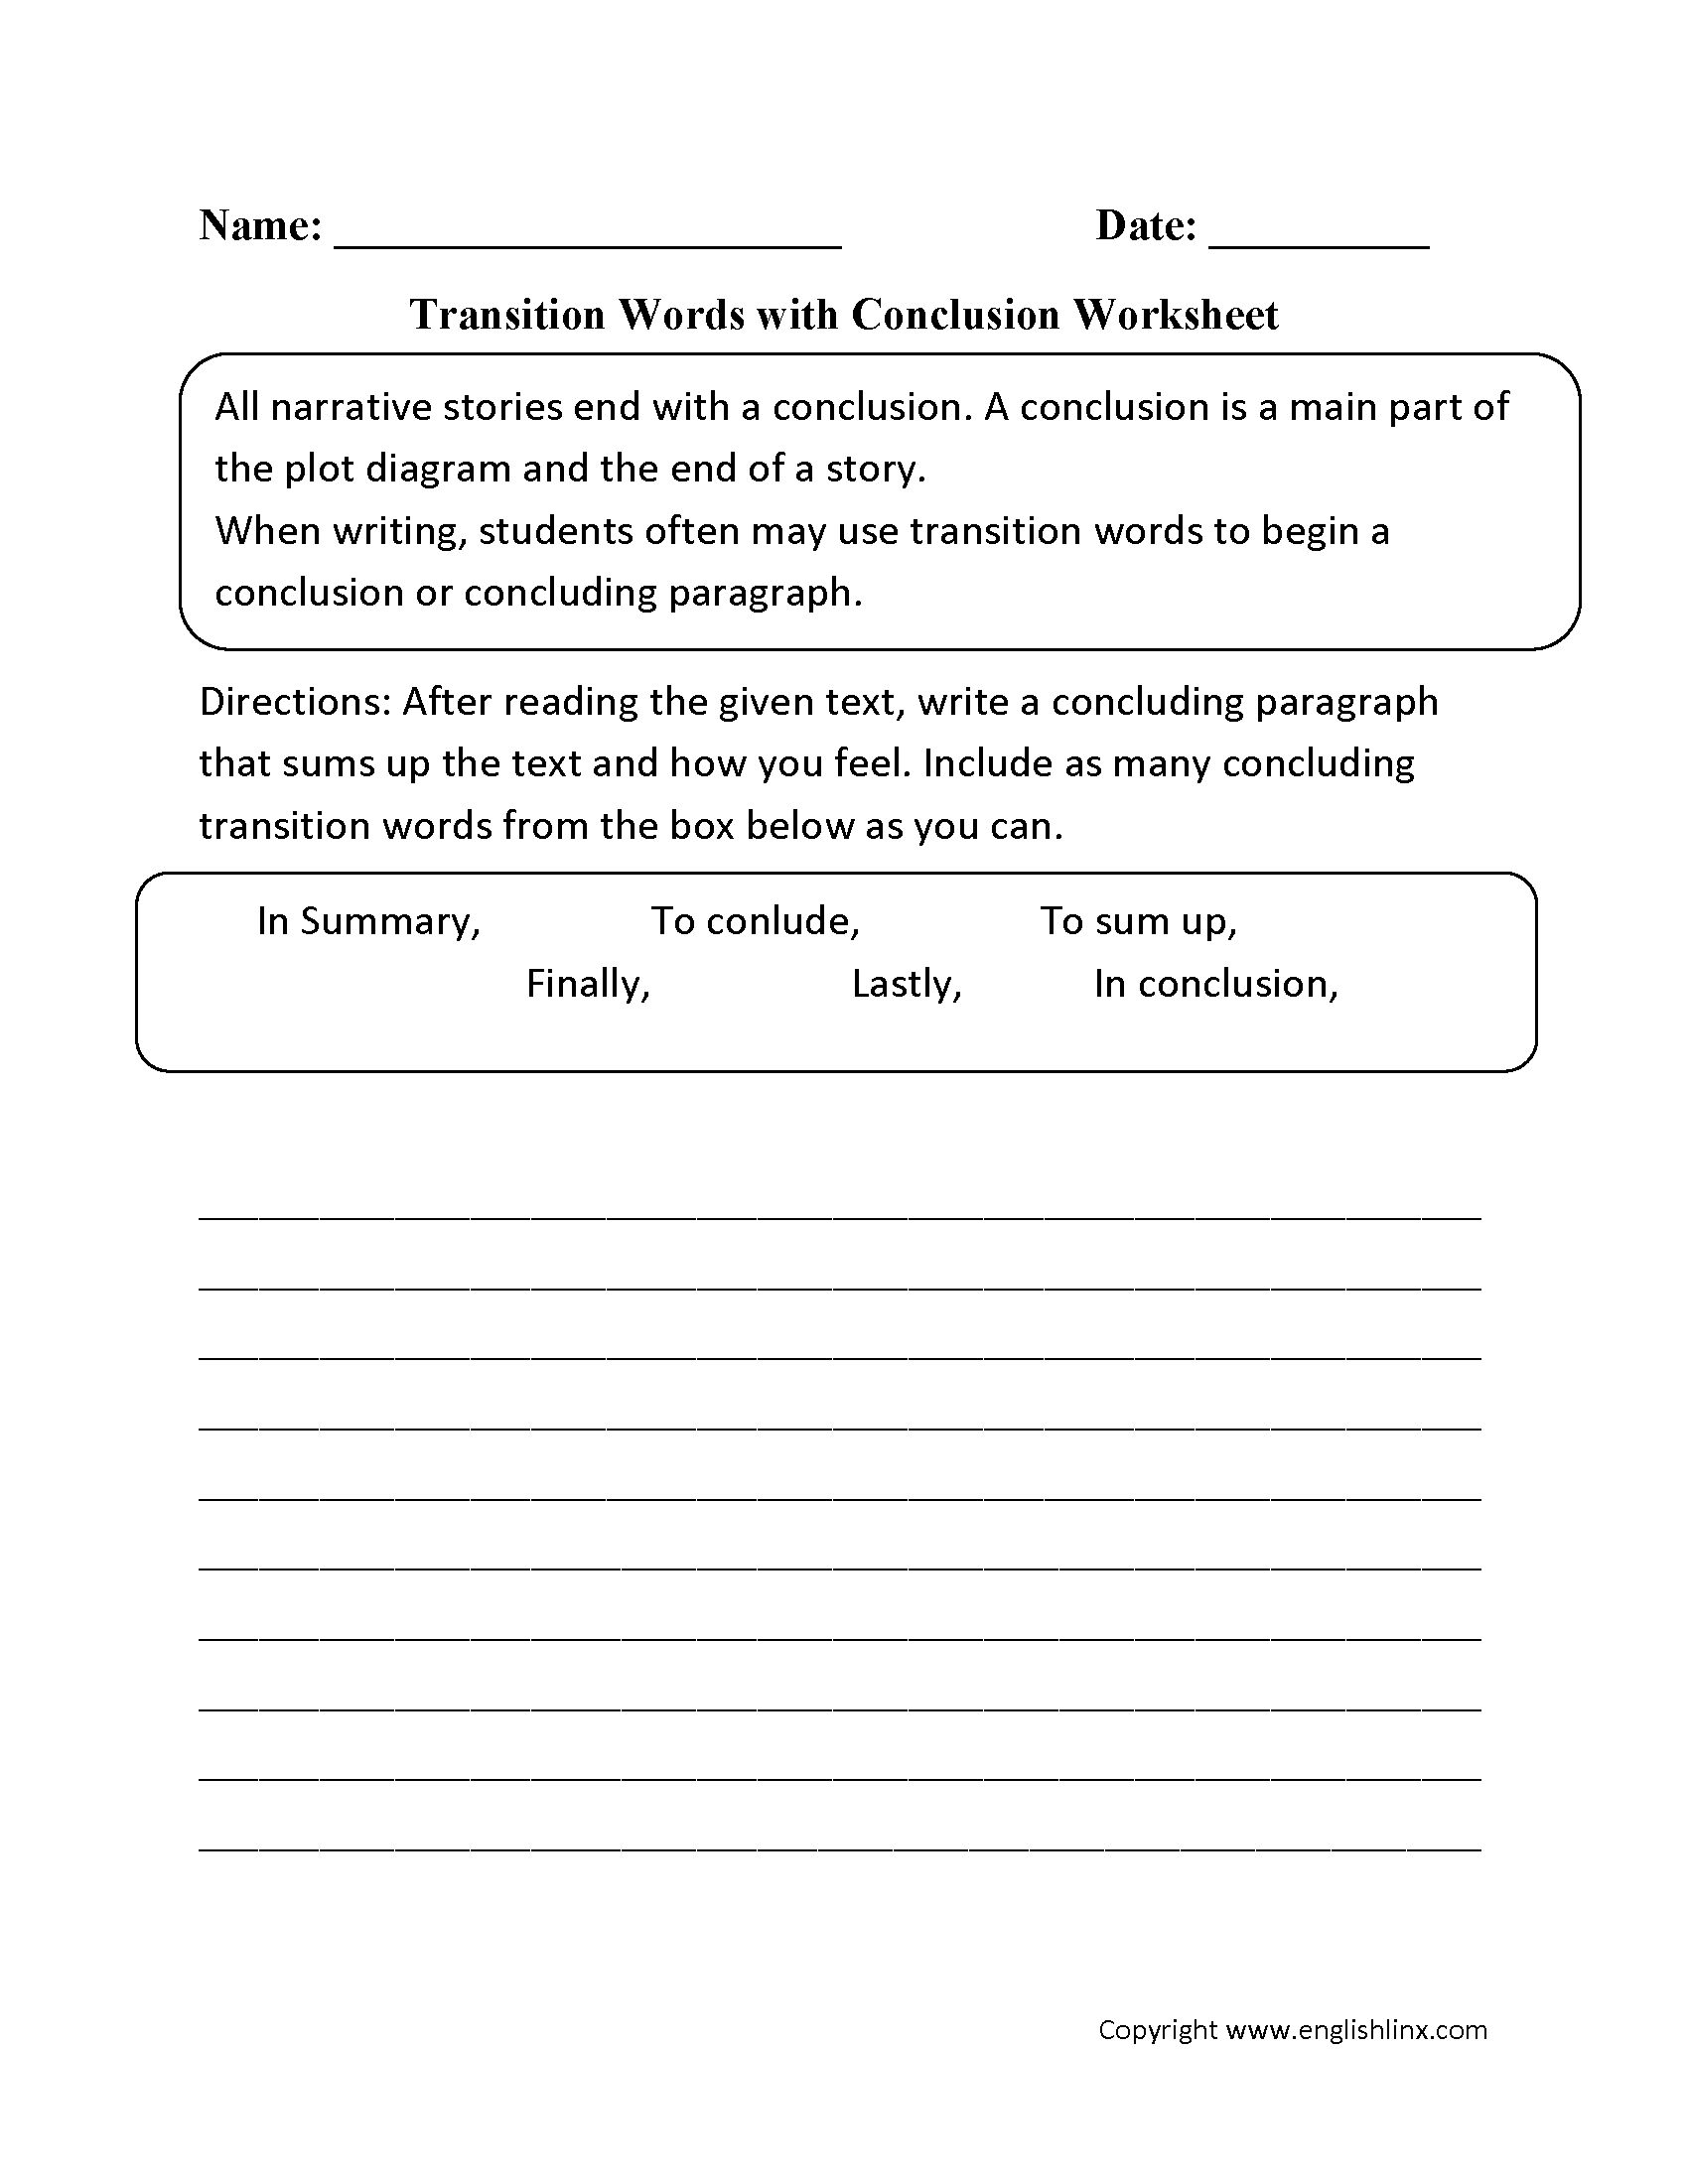 Worksheets Drawing Conclusions Worksheets 3rd Grade reading worksheets drawing conclusions conclusion worksheet